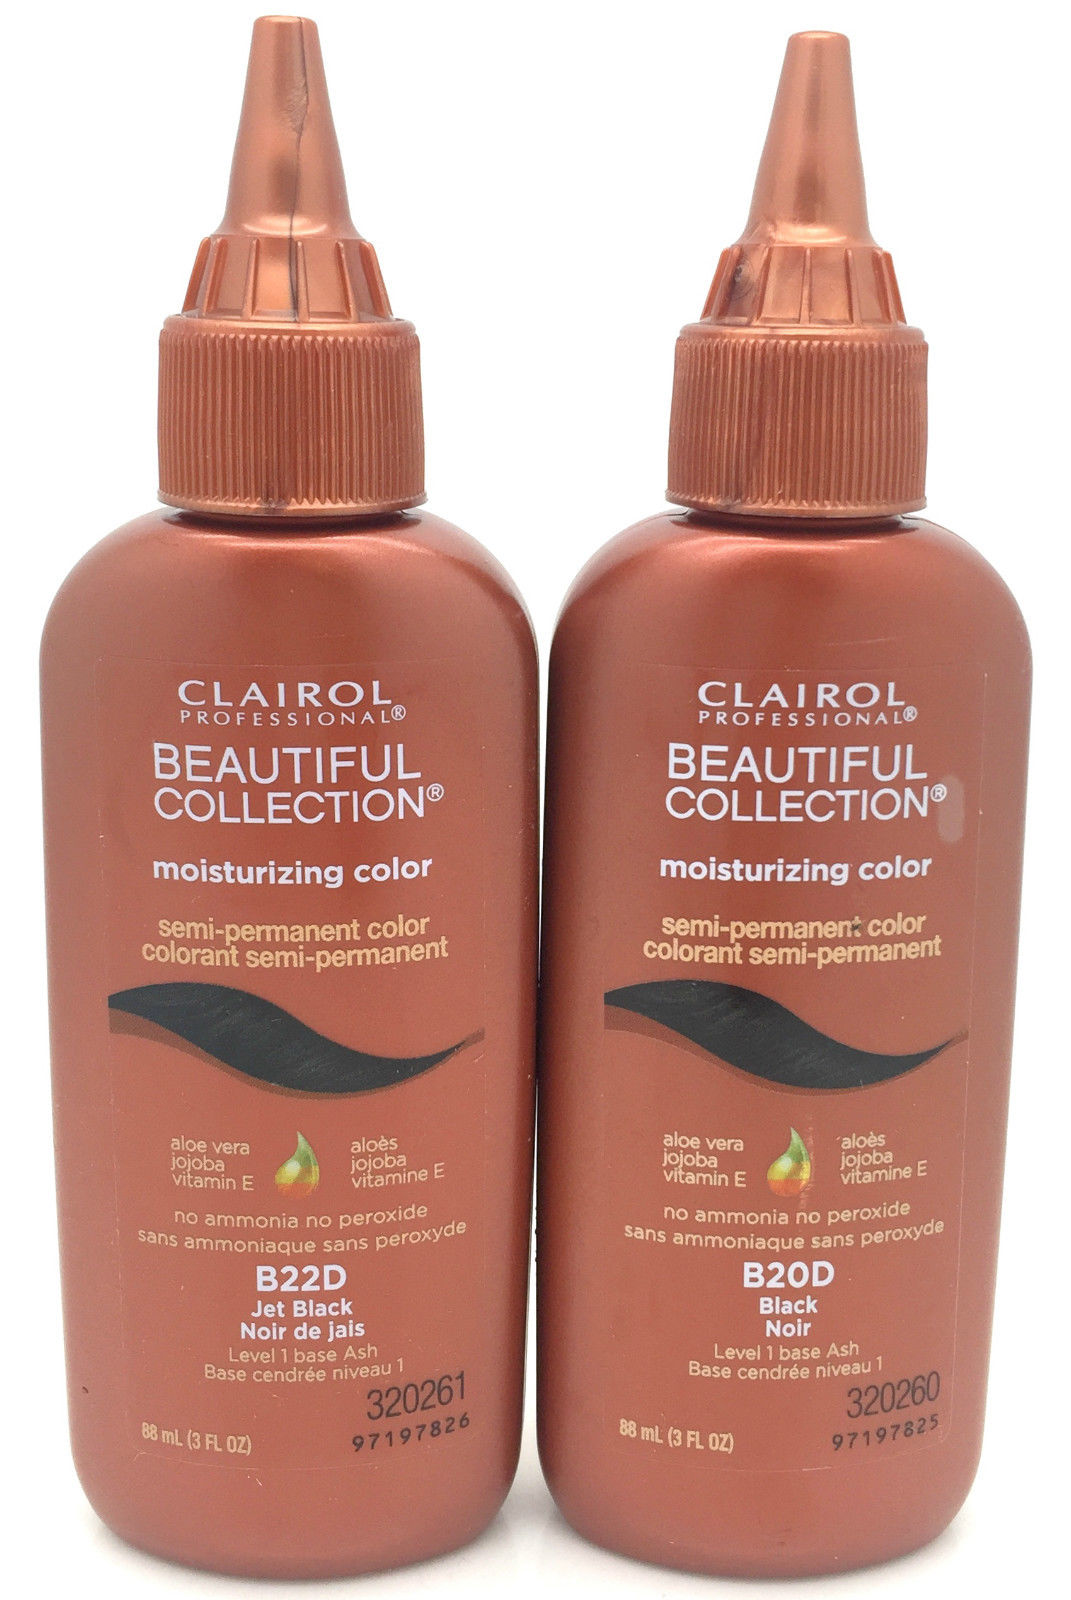 Clairol semi permanent hair color instructions best hair color clairol professional hair color reviews images coloring ideas geenschuldenfo Gallery